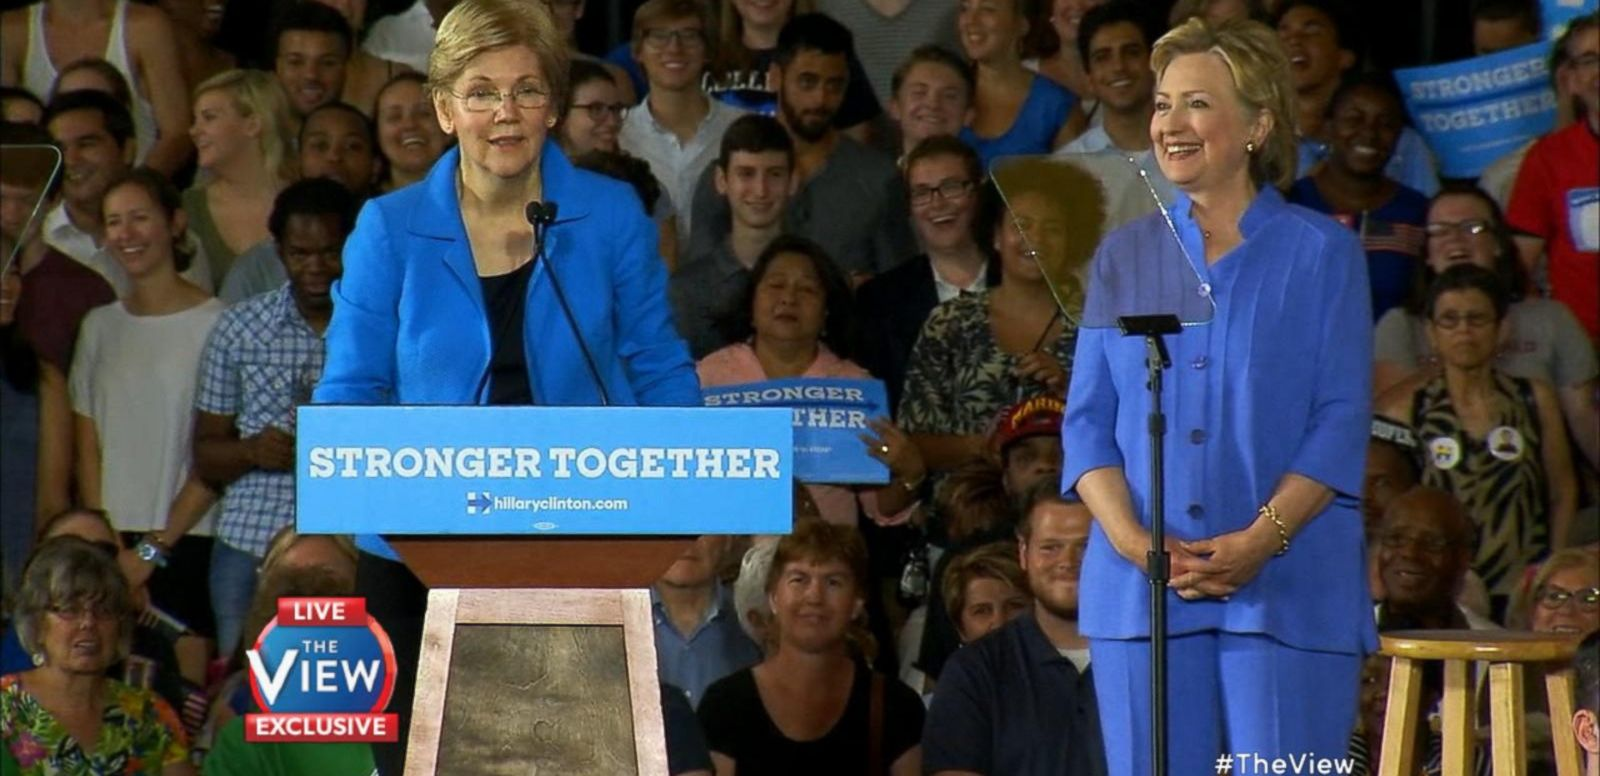 VIDEO: 'The View' Exclusive: Senator Elizabeth Warren Discusses Campaigning With Hillary Clinton, Trump & More